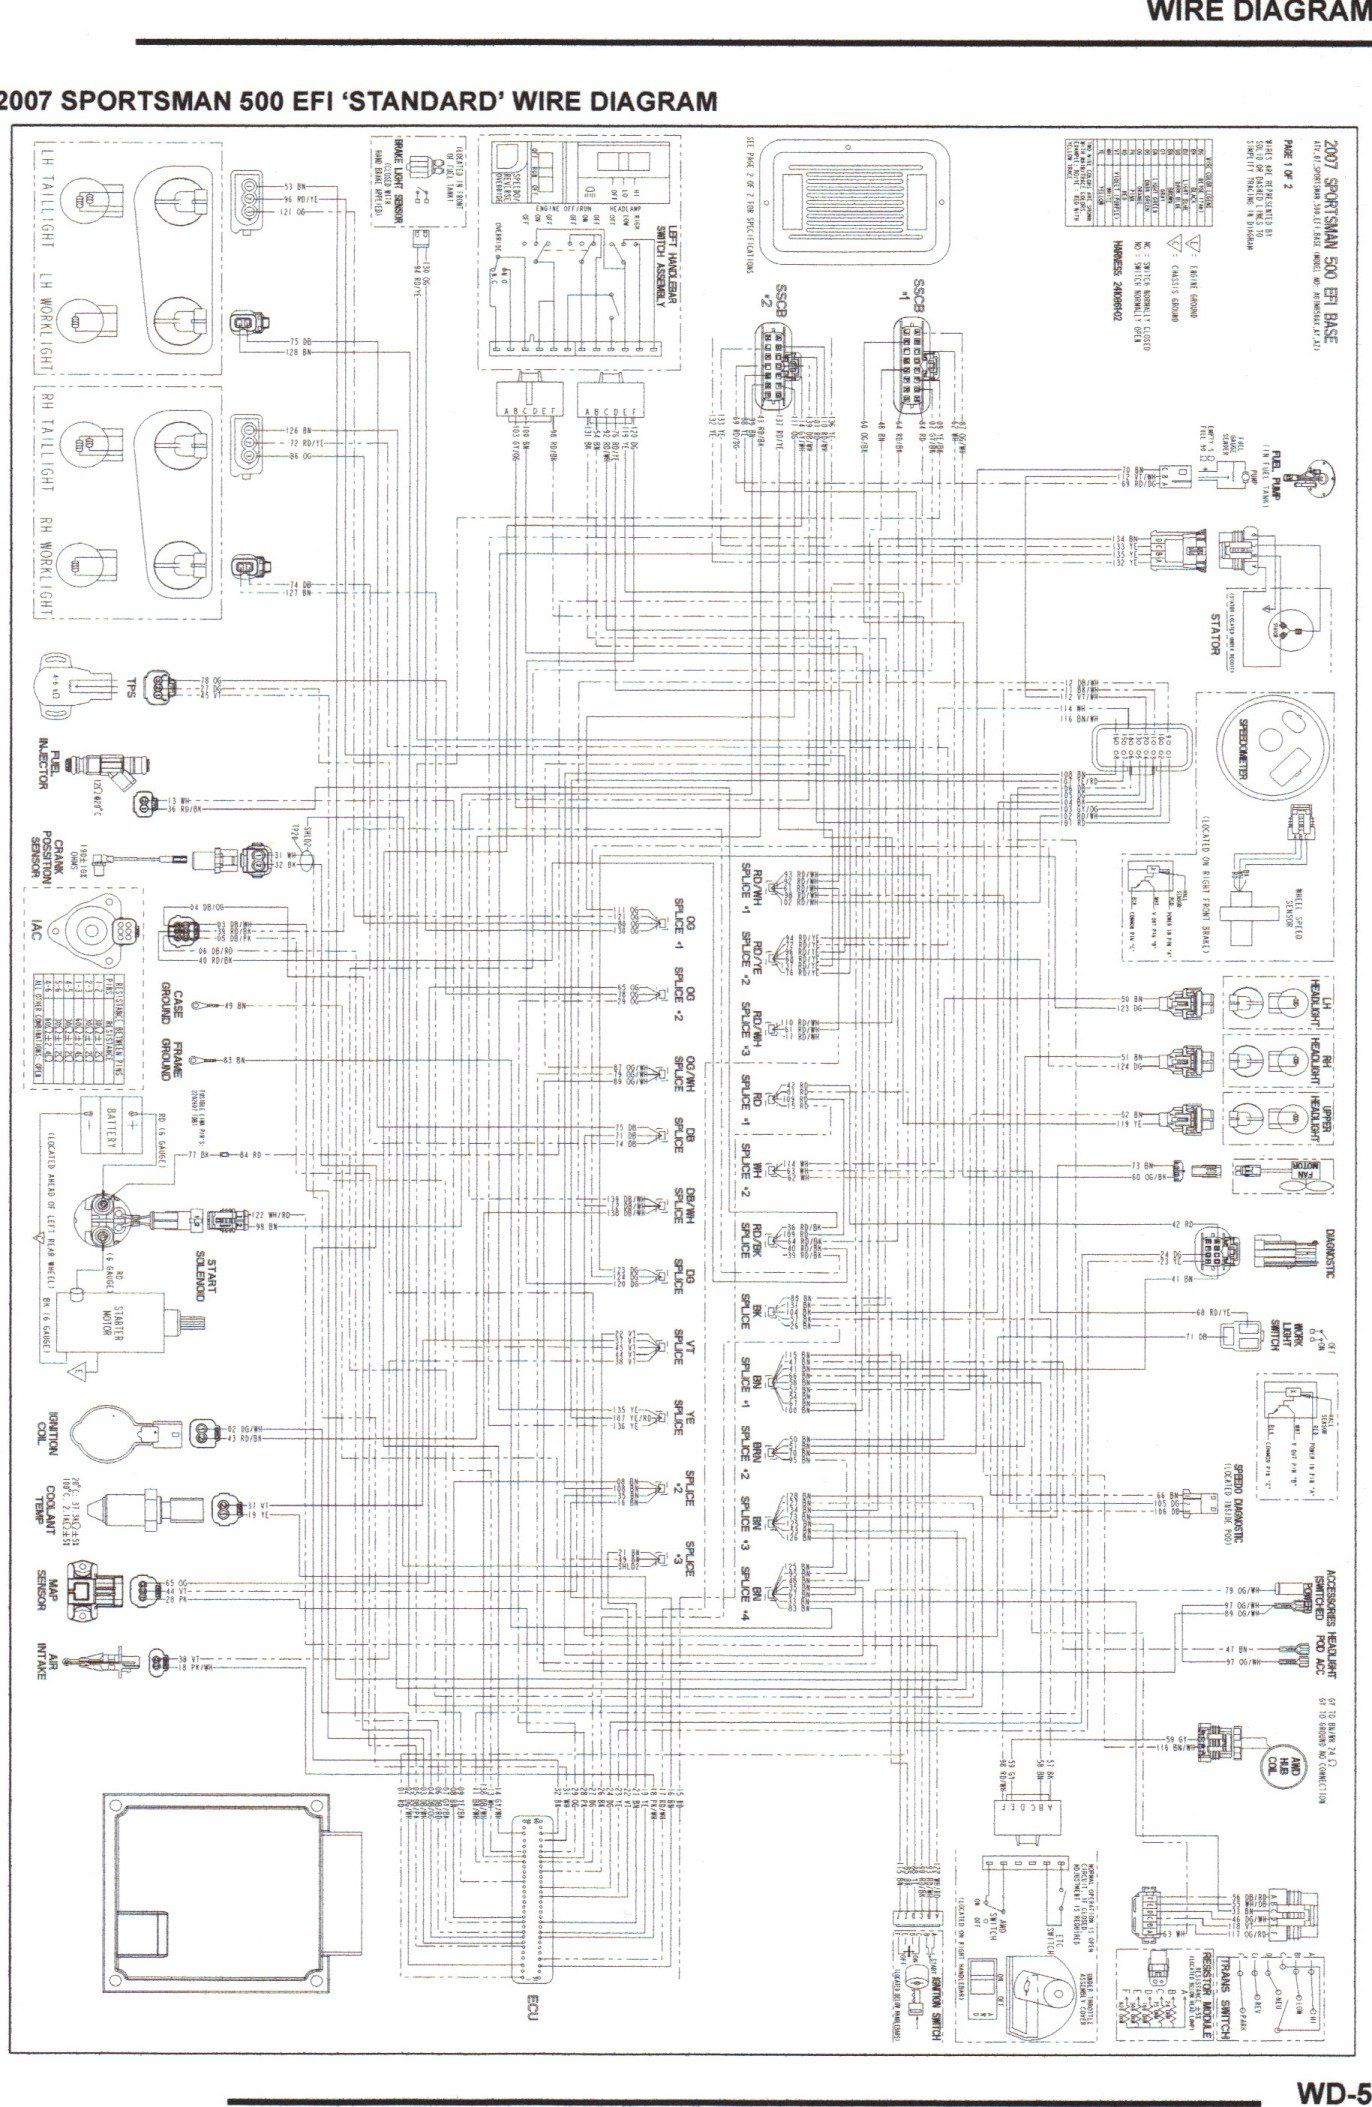 medium resolution of 05 polaris atv wiring diagram wiring diagram for you polaris sportsman 500 wiring schematics 02 polaris